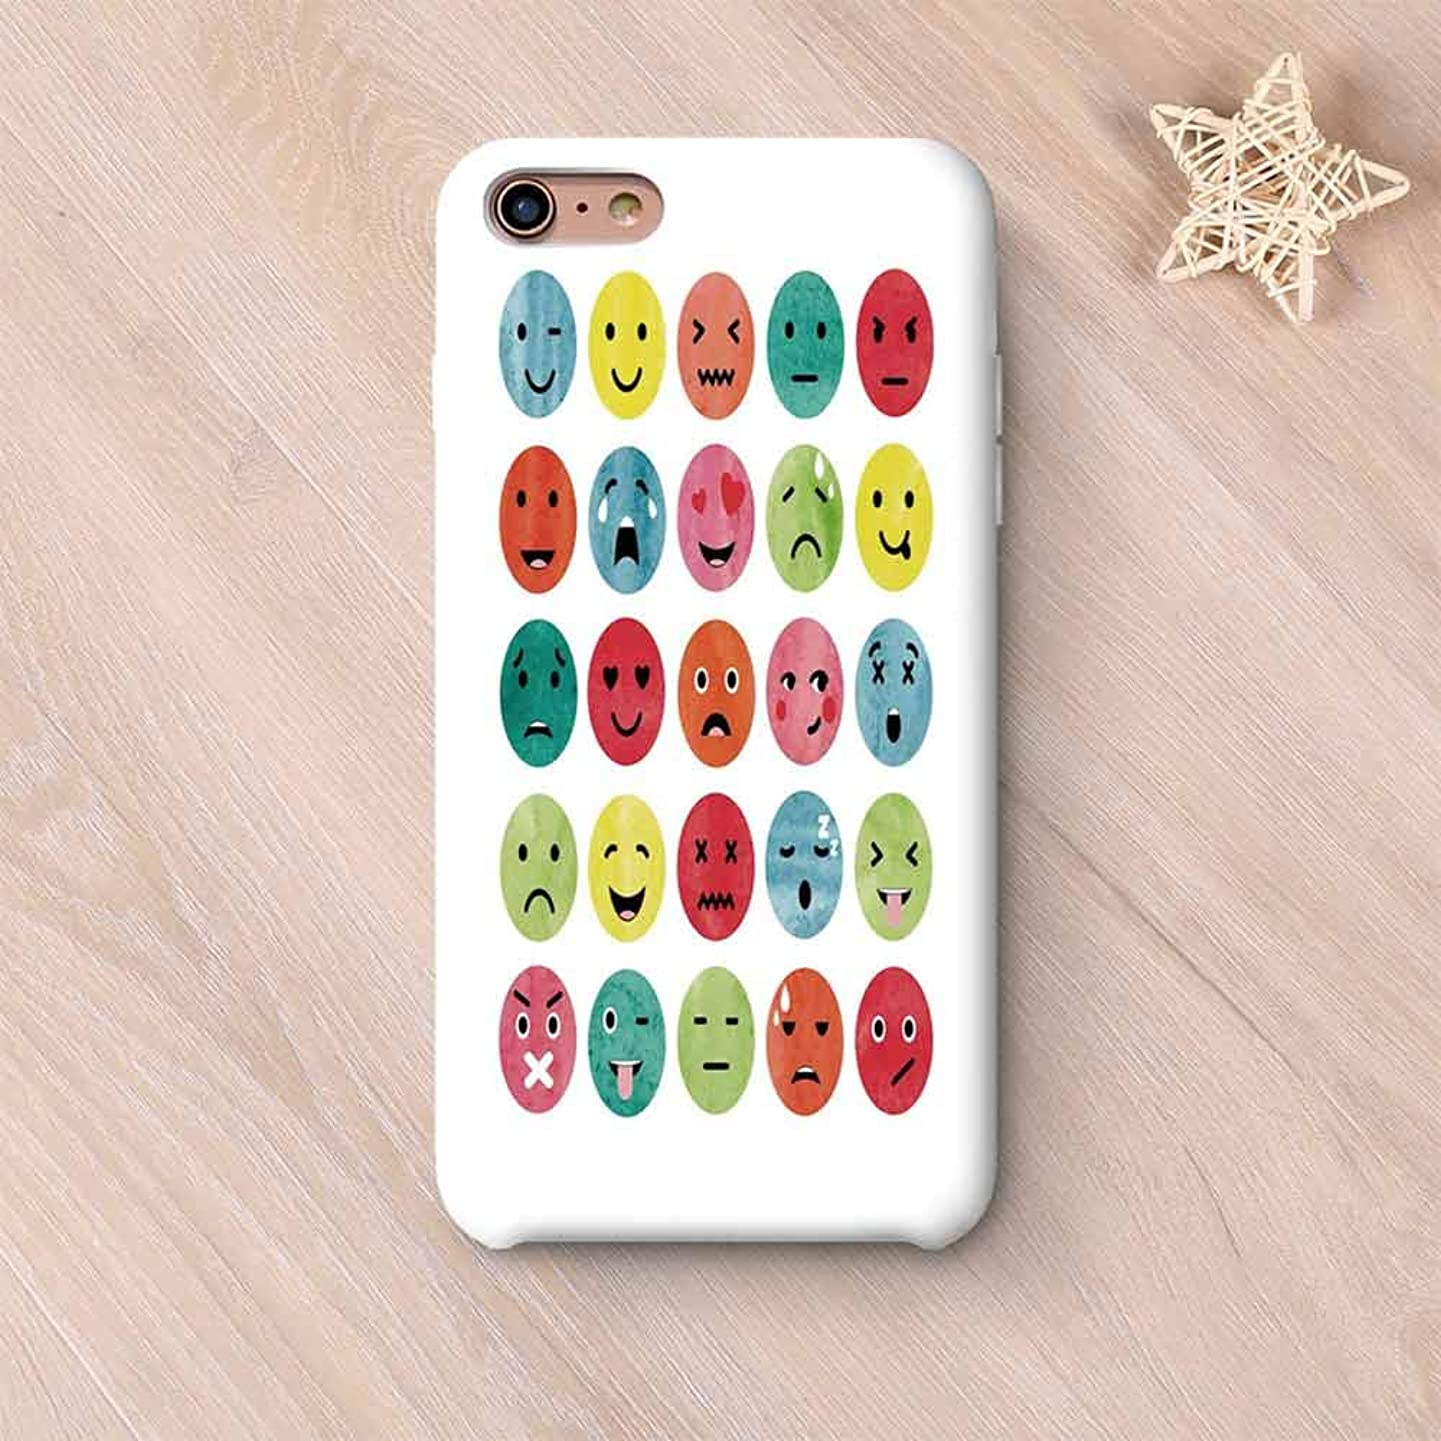 Emoji No Odor Compatible with iPhone Case,Watercolor Abstract Facial Expressions Winking Crying Loving Surprised Collection Decorative Compatible with iPhone 7/8 Plus,iPhone 6 Plus / 6s Plus